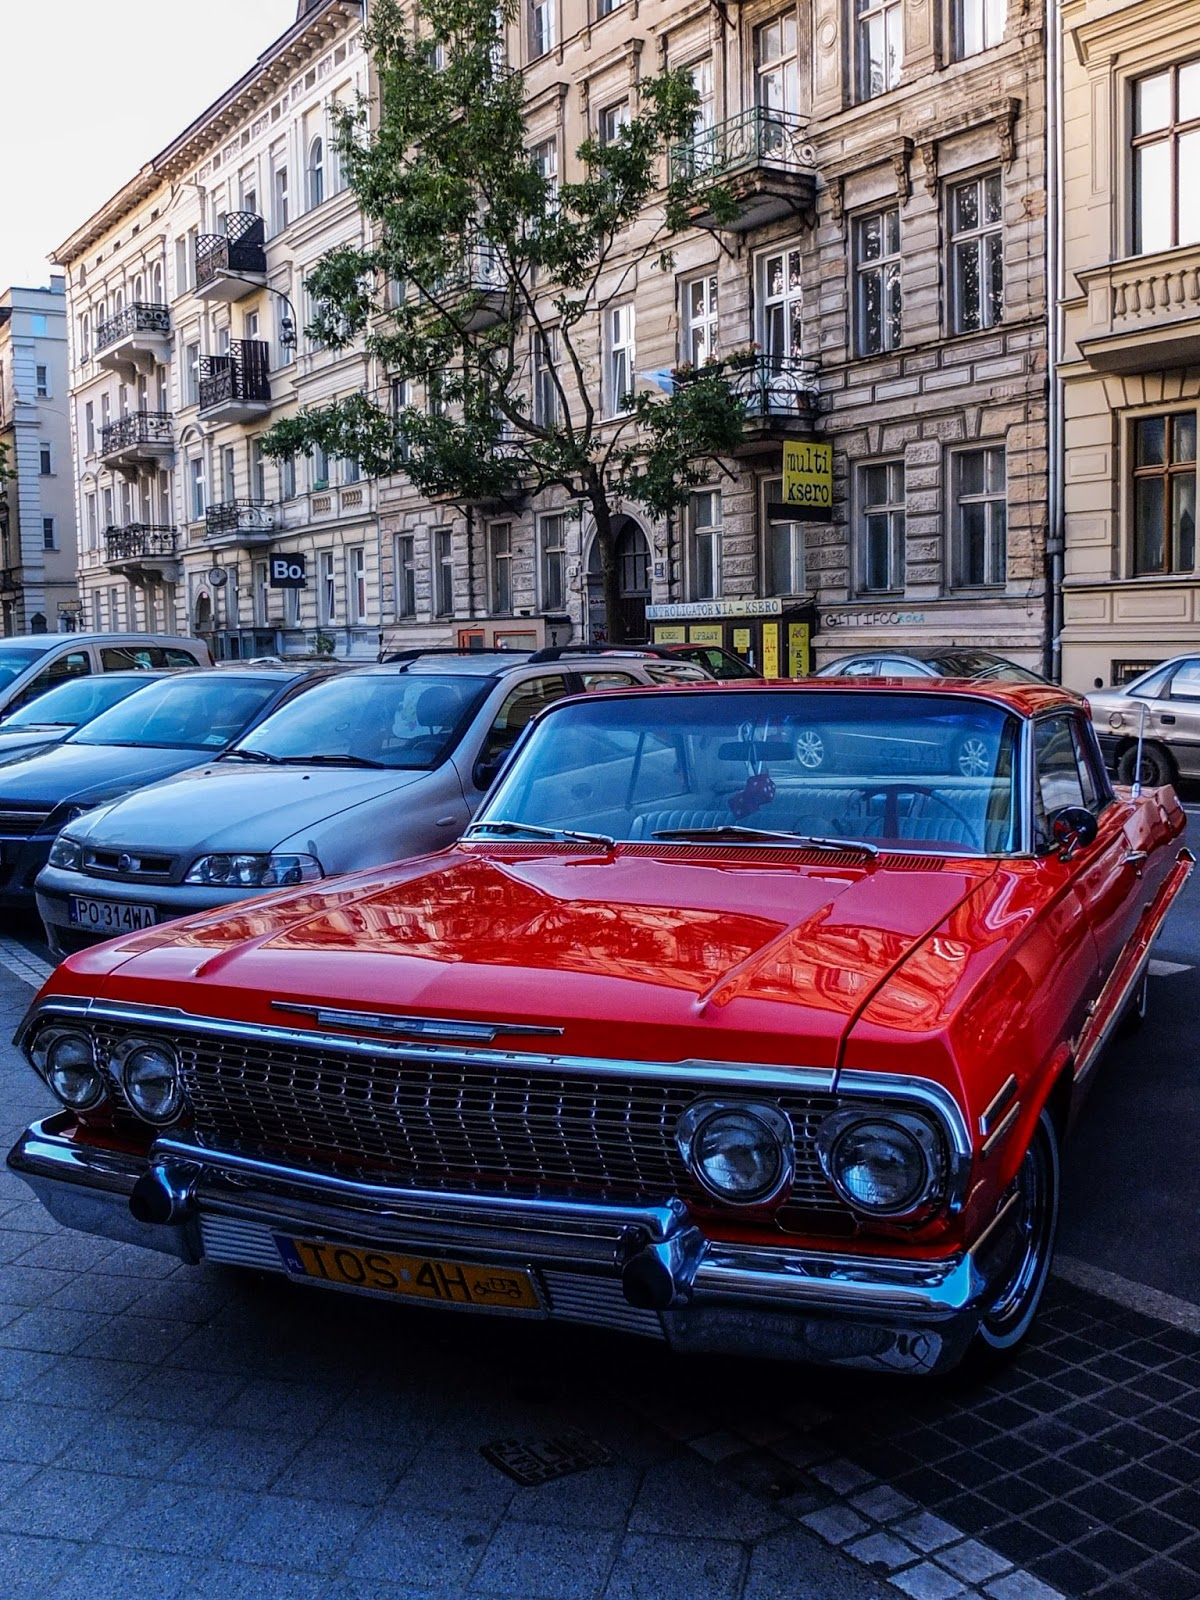 A red Chevrolet parked on the street in Poznań, Poland.